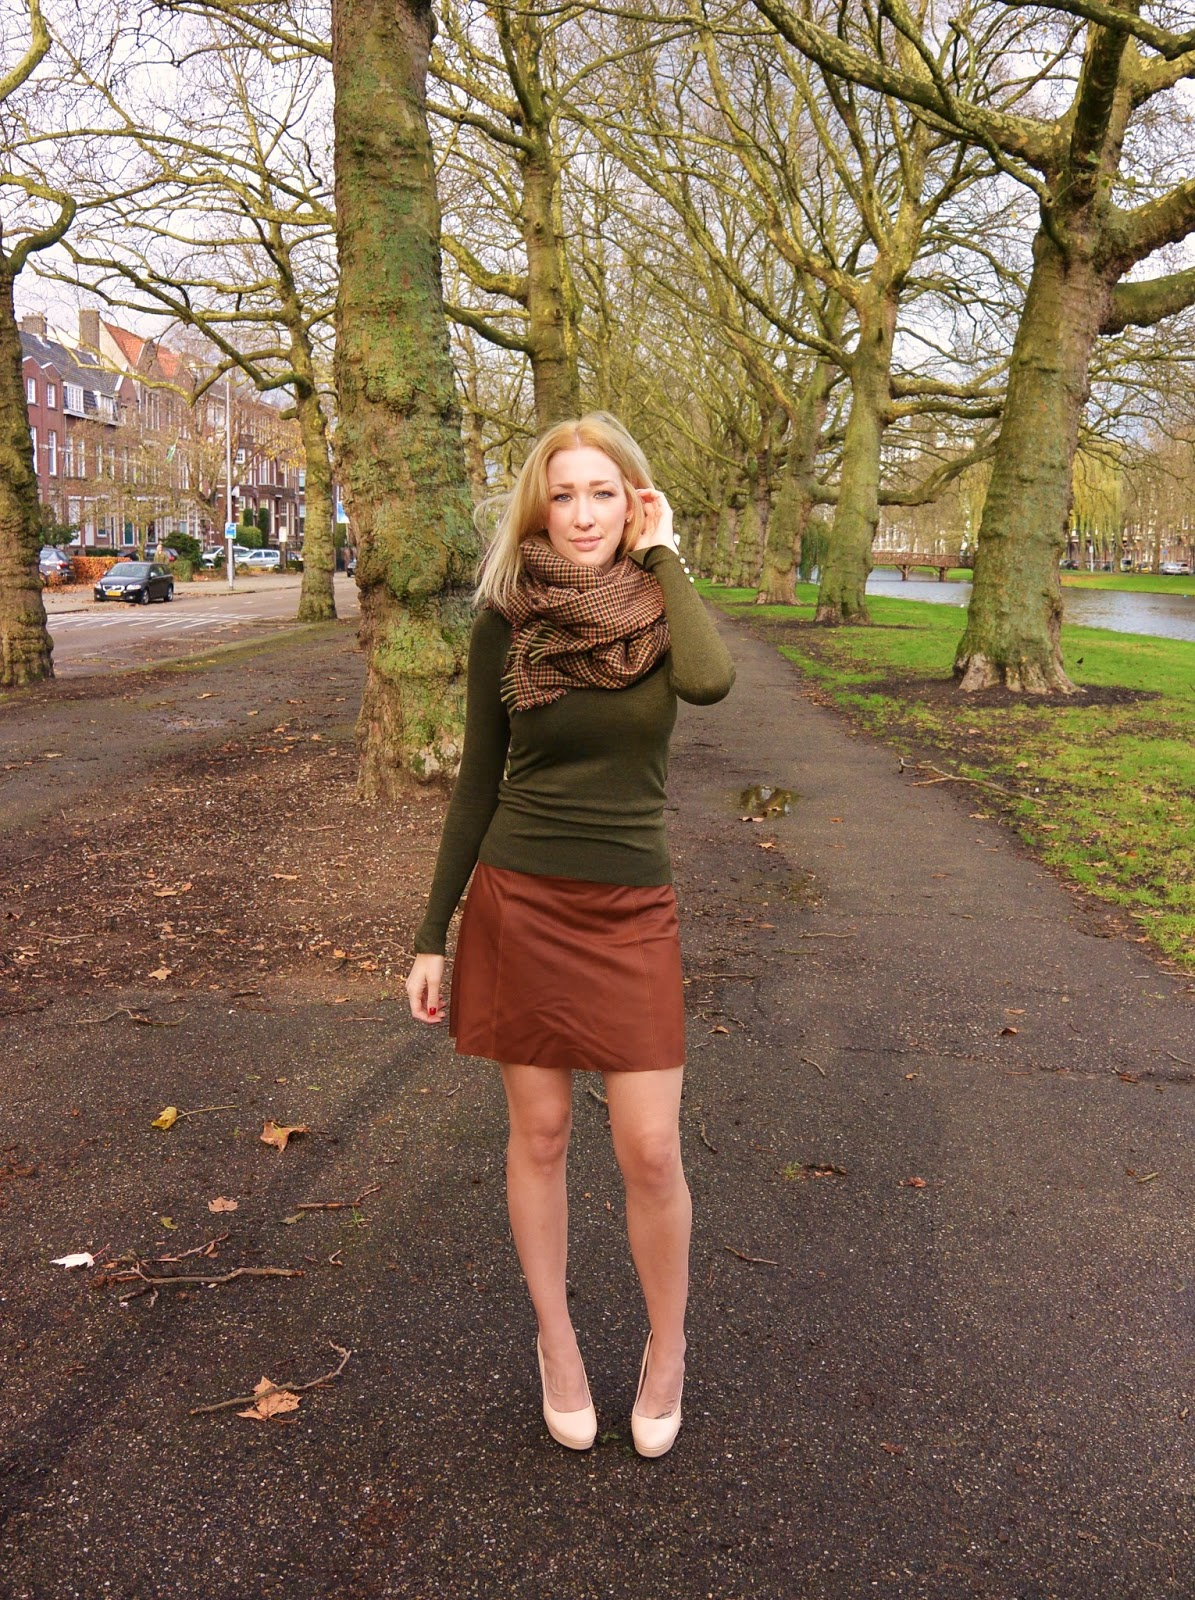 Brown Leather Skirt And Green Sweater | Dashingly Elevating